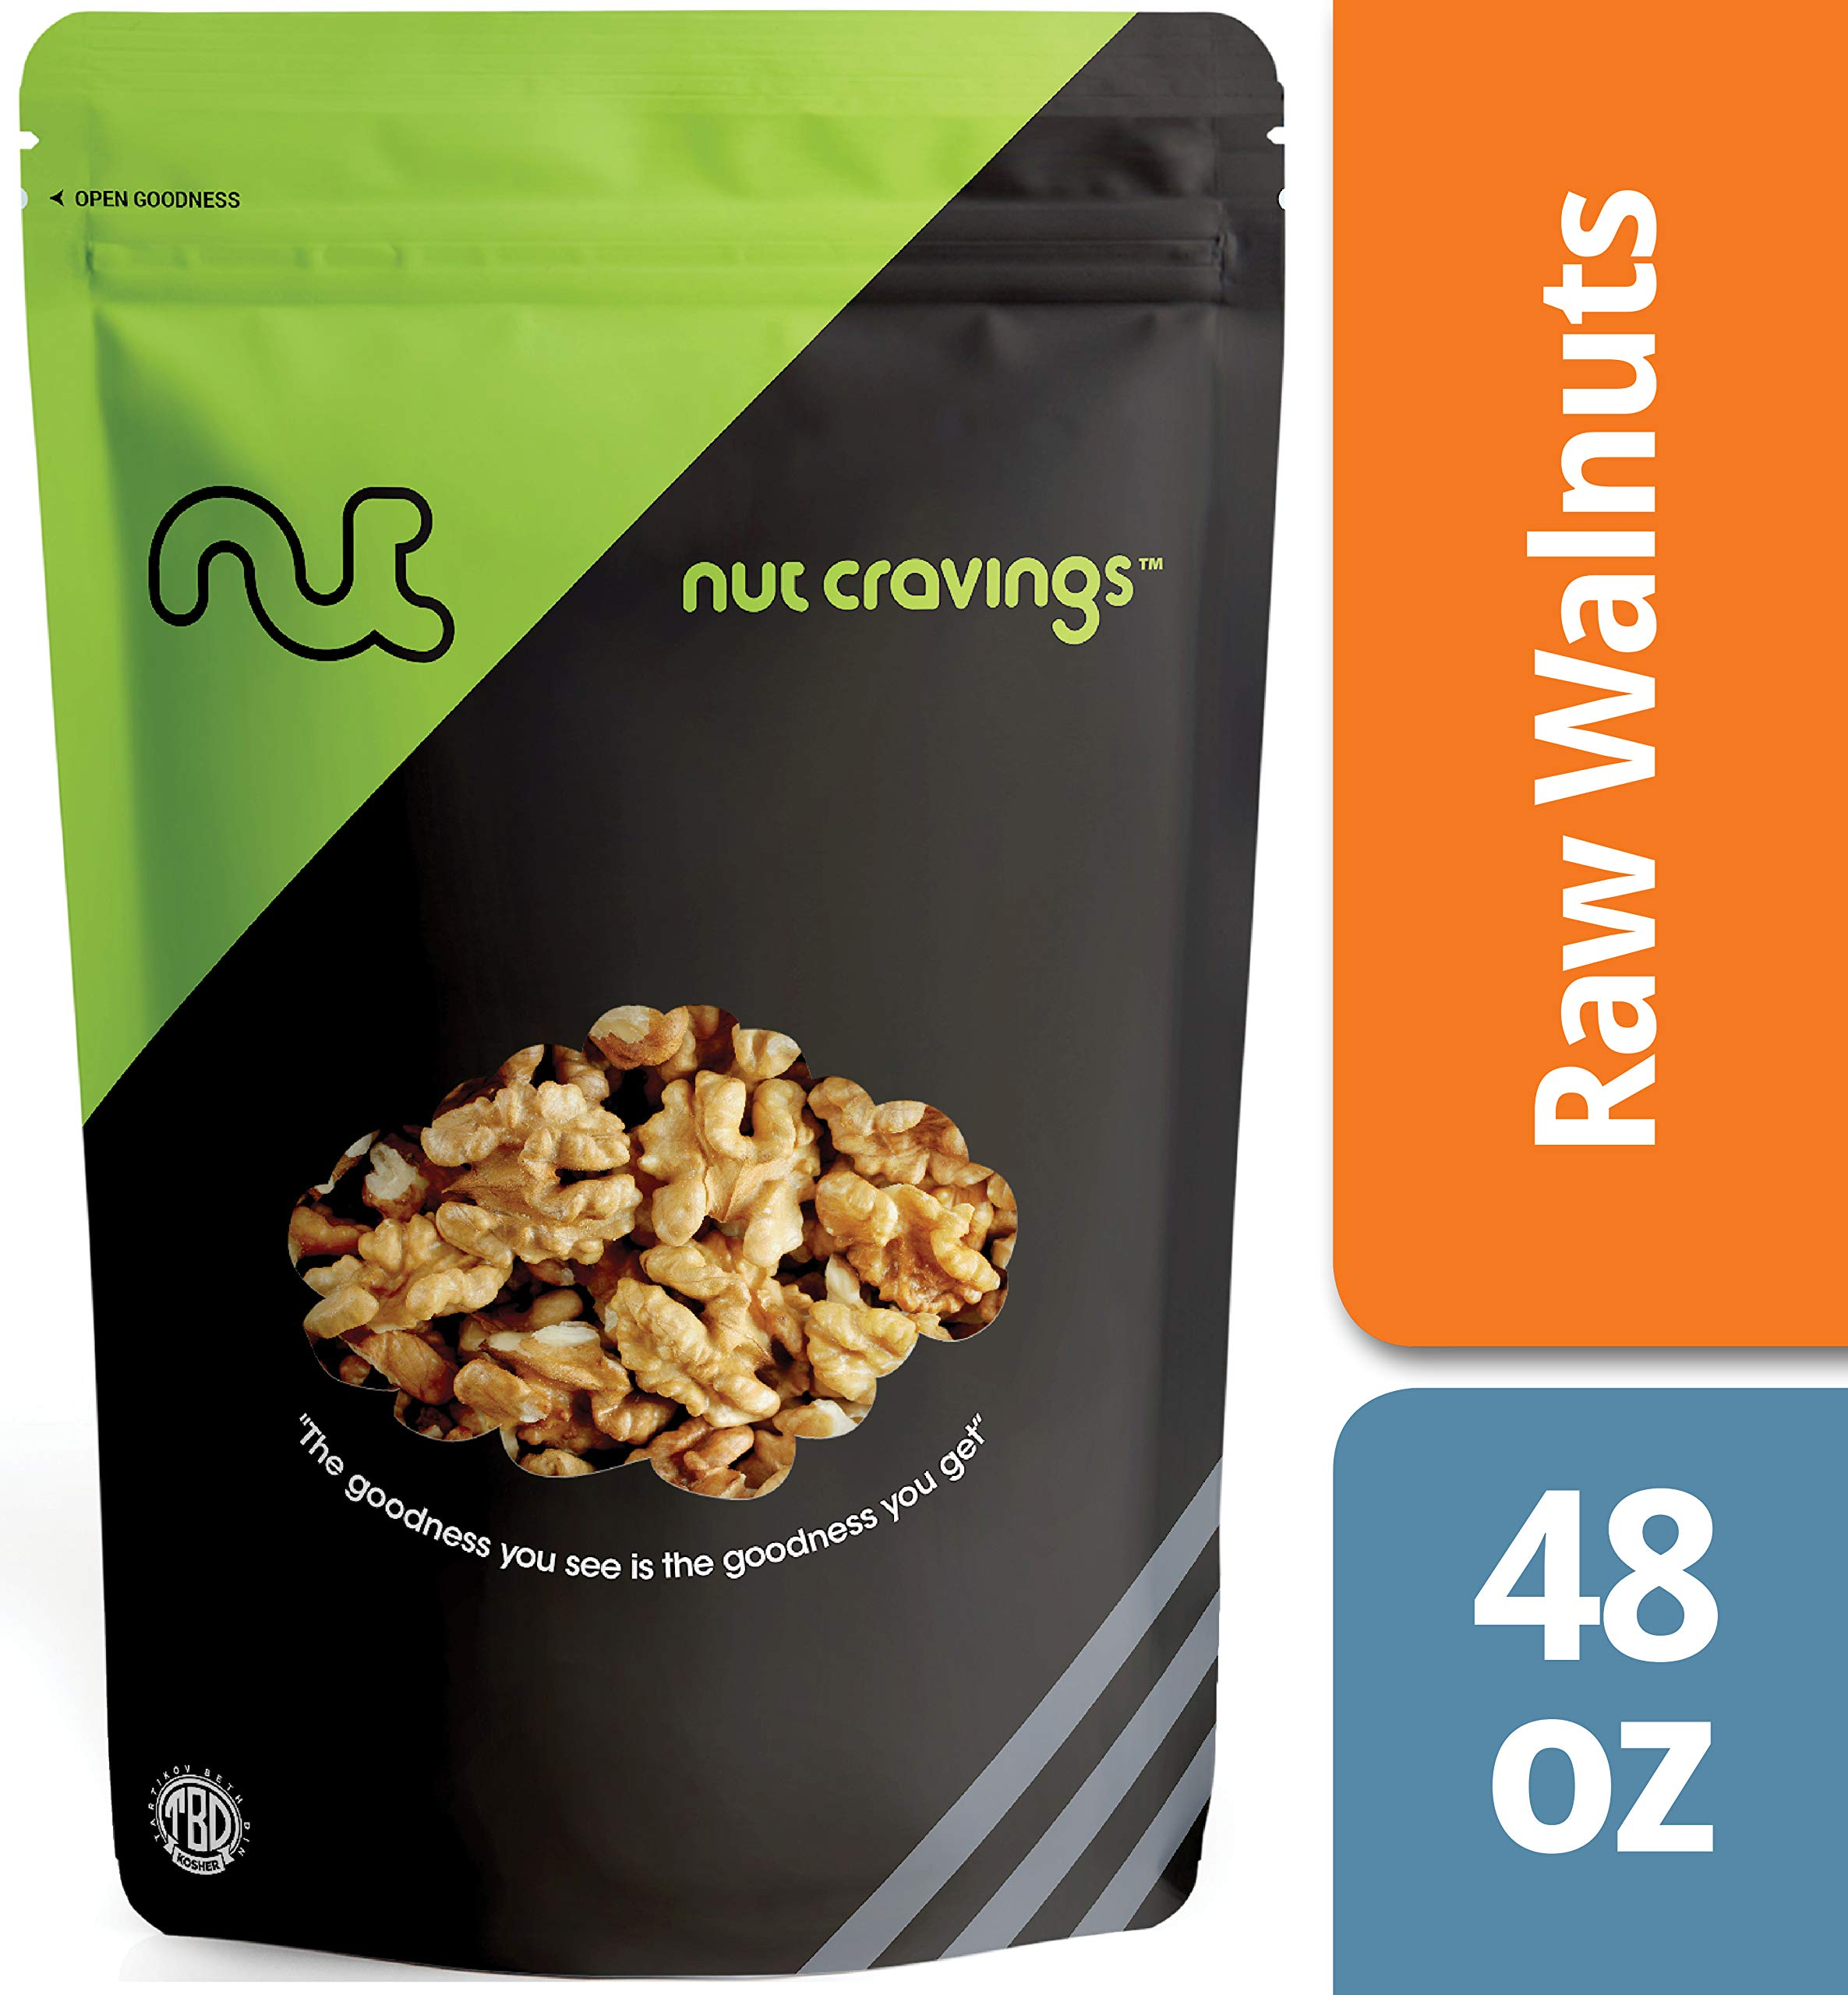 Nut Cravings California Raw Walnuts (3 Pounds) - 100% All Natural Shelled Halves and Pieces - 48 Ounce by Nut Cravings